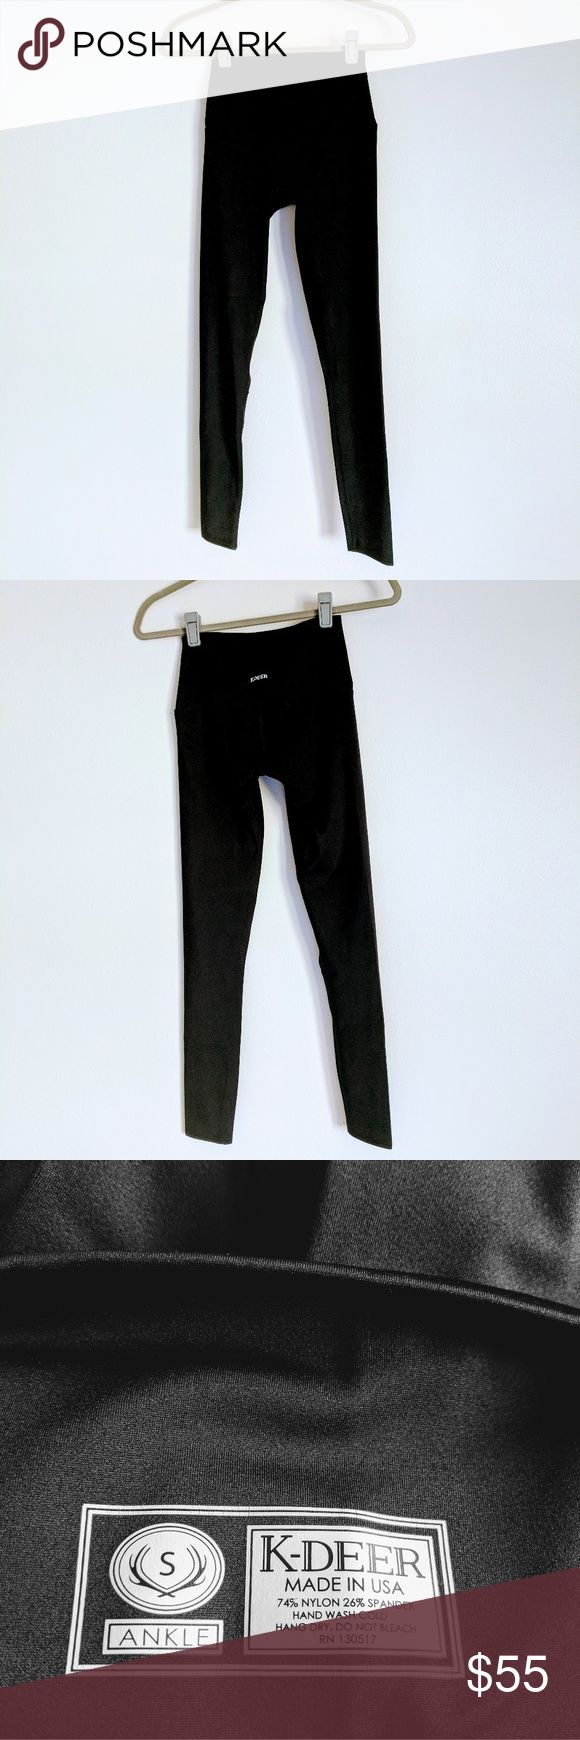 """*NEVER WORN* K-Deer 'sneaker length' leggings Brand new, never worn! Perfect condition, high-quality material. Sneaker/ankle length, fits TTS. At 5'7"""" & 120 lbs, these fit me well, with just enough stretch. I could have sized down to an XS, but I prefer a looser versus a compression type of fit. Only getting rid of these to downsize my closet. 😊 You will love these! K-Deer Pants Leggings"""